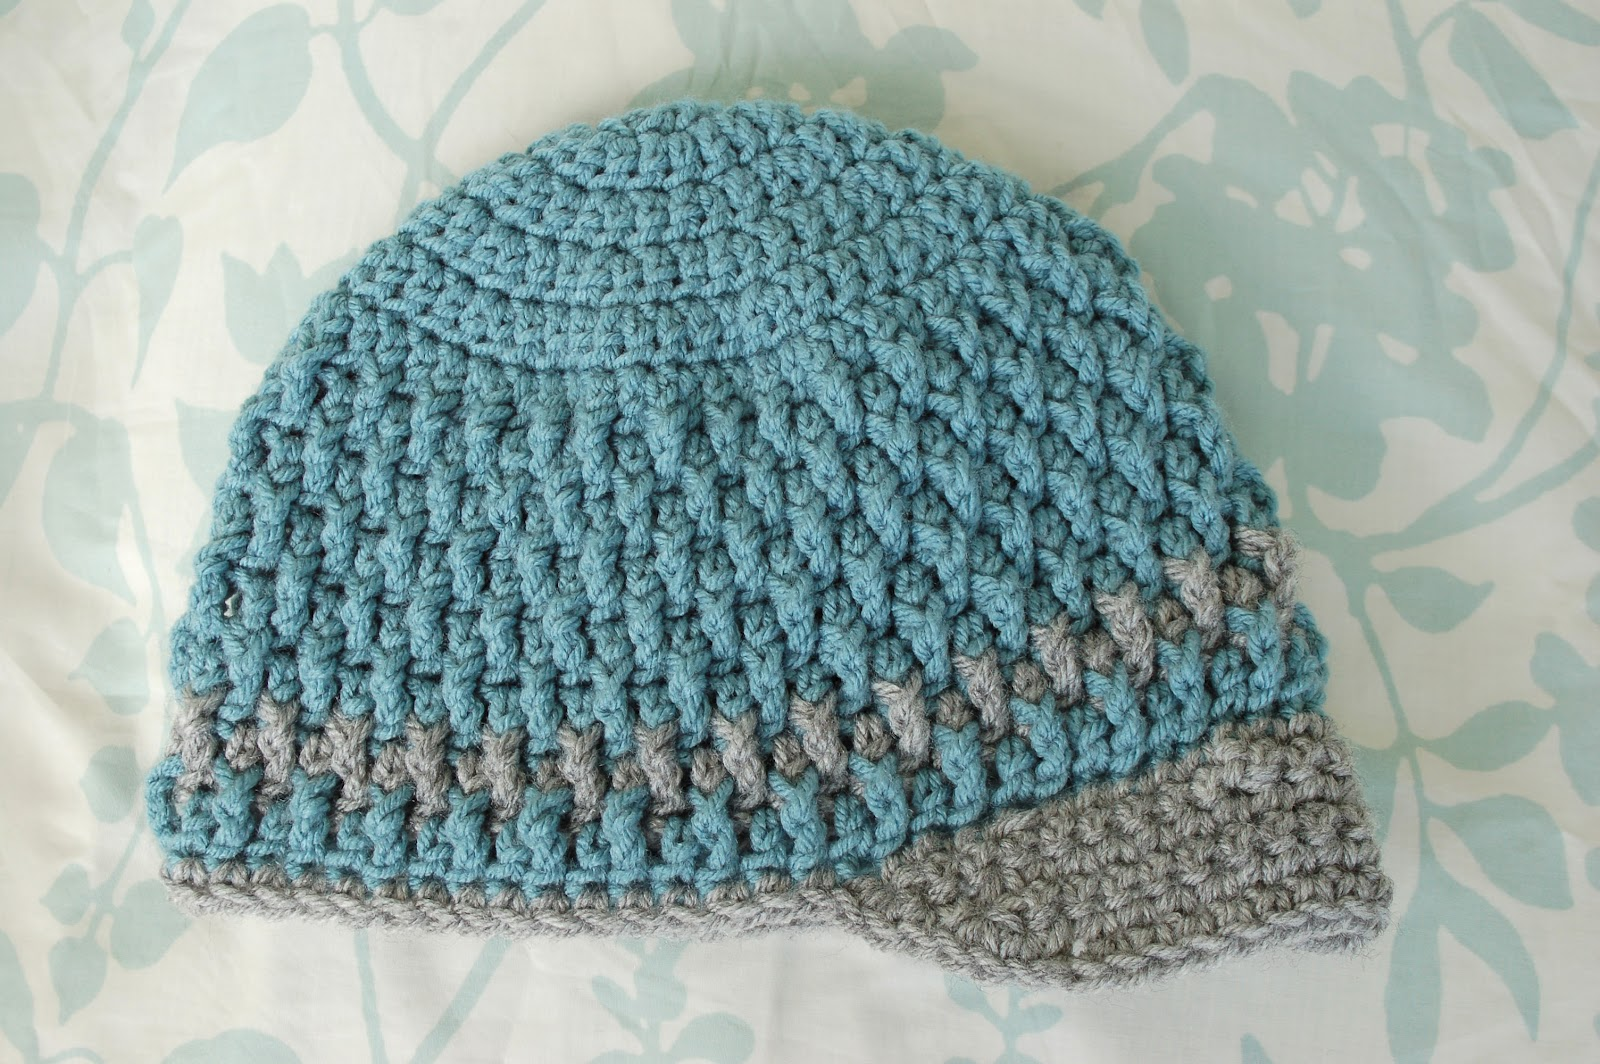 Free Crochet Patterns For Baby Toddler Hats : Alli Crafts: Free Pattern: Deeply Textured Hat - Toddler